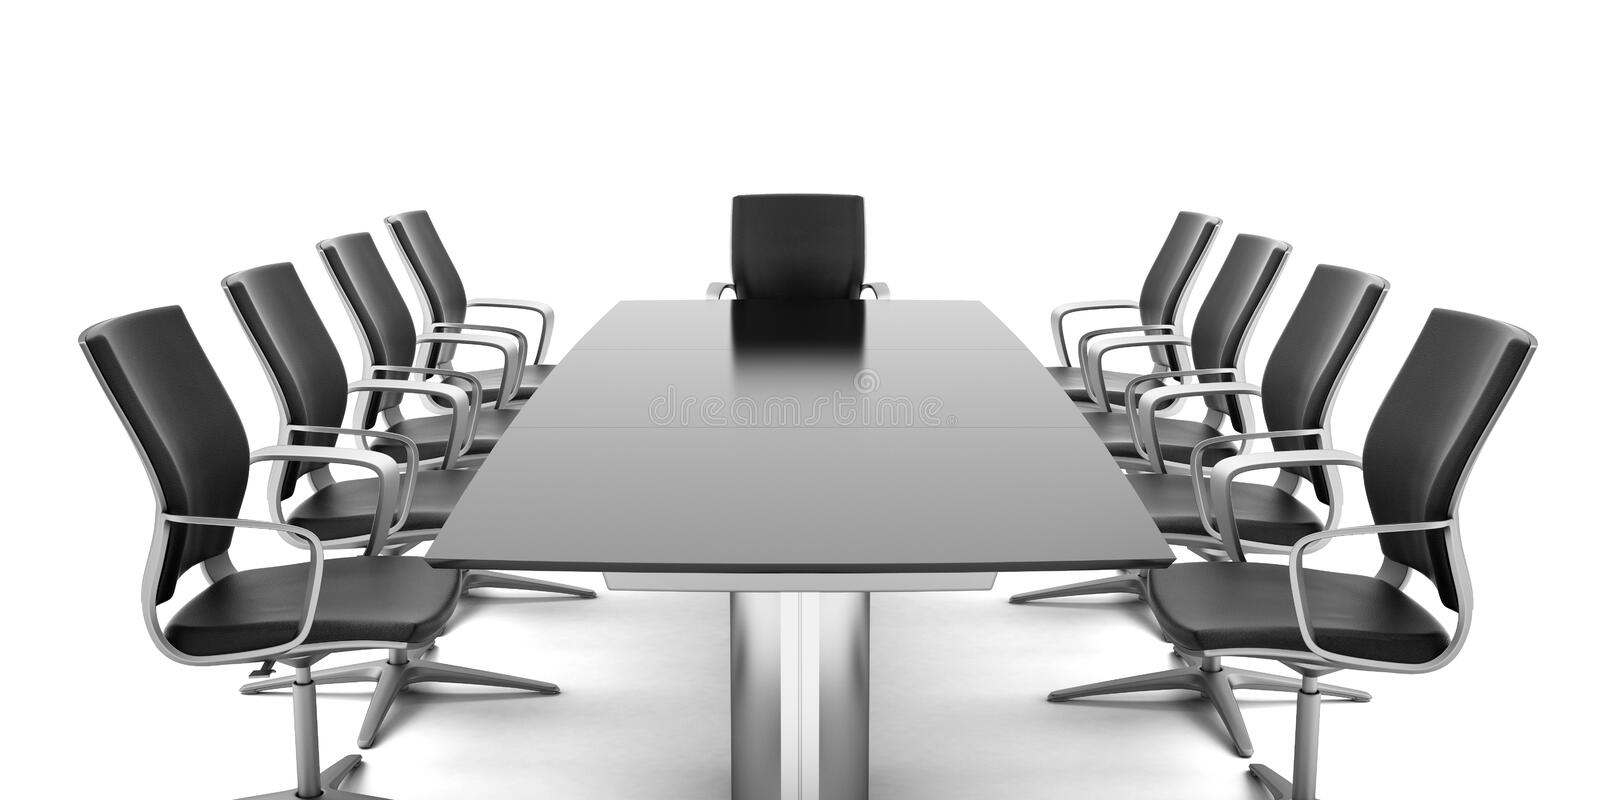 Conference Table with chairs stock illustration